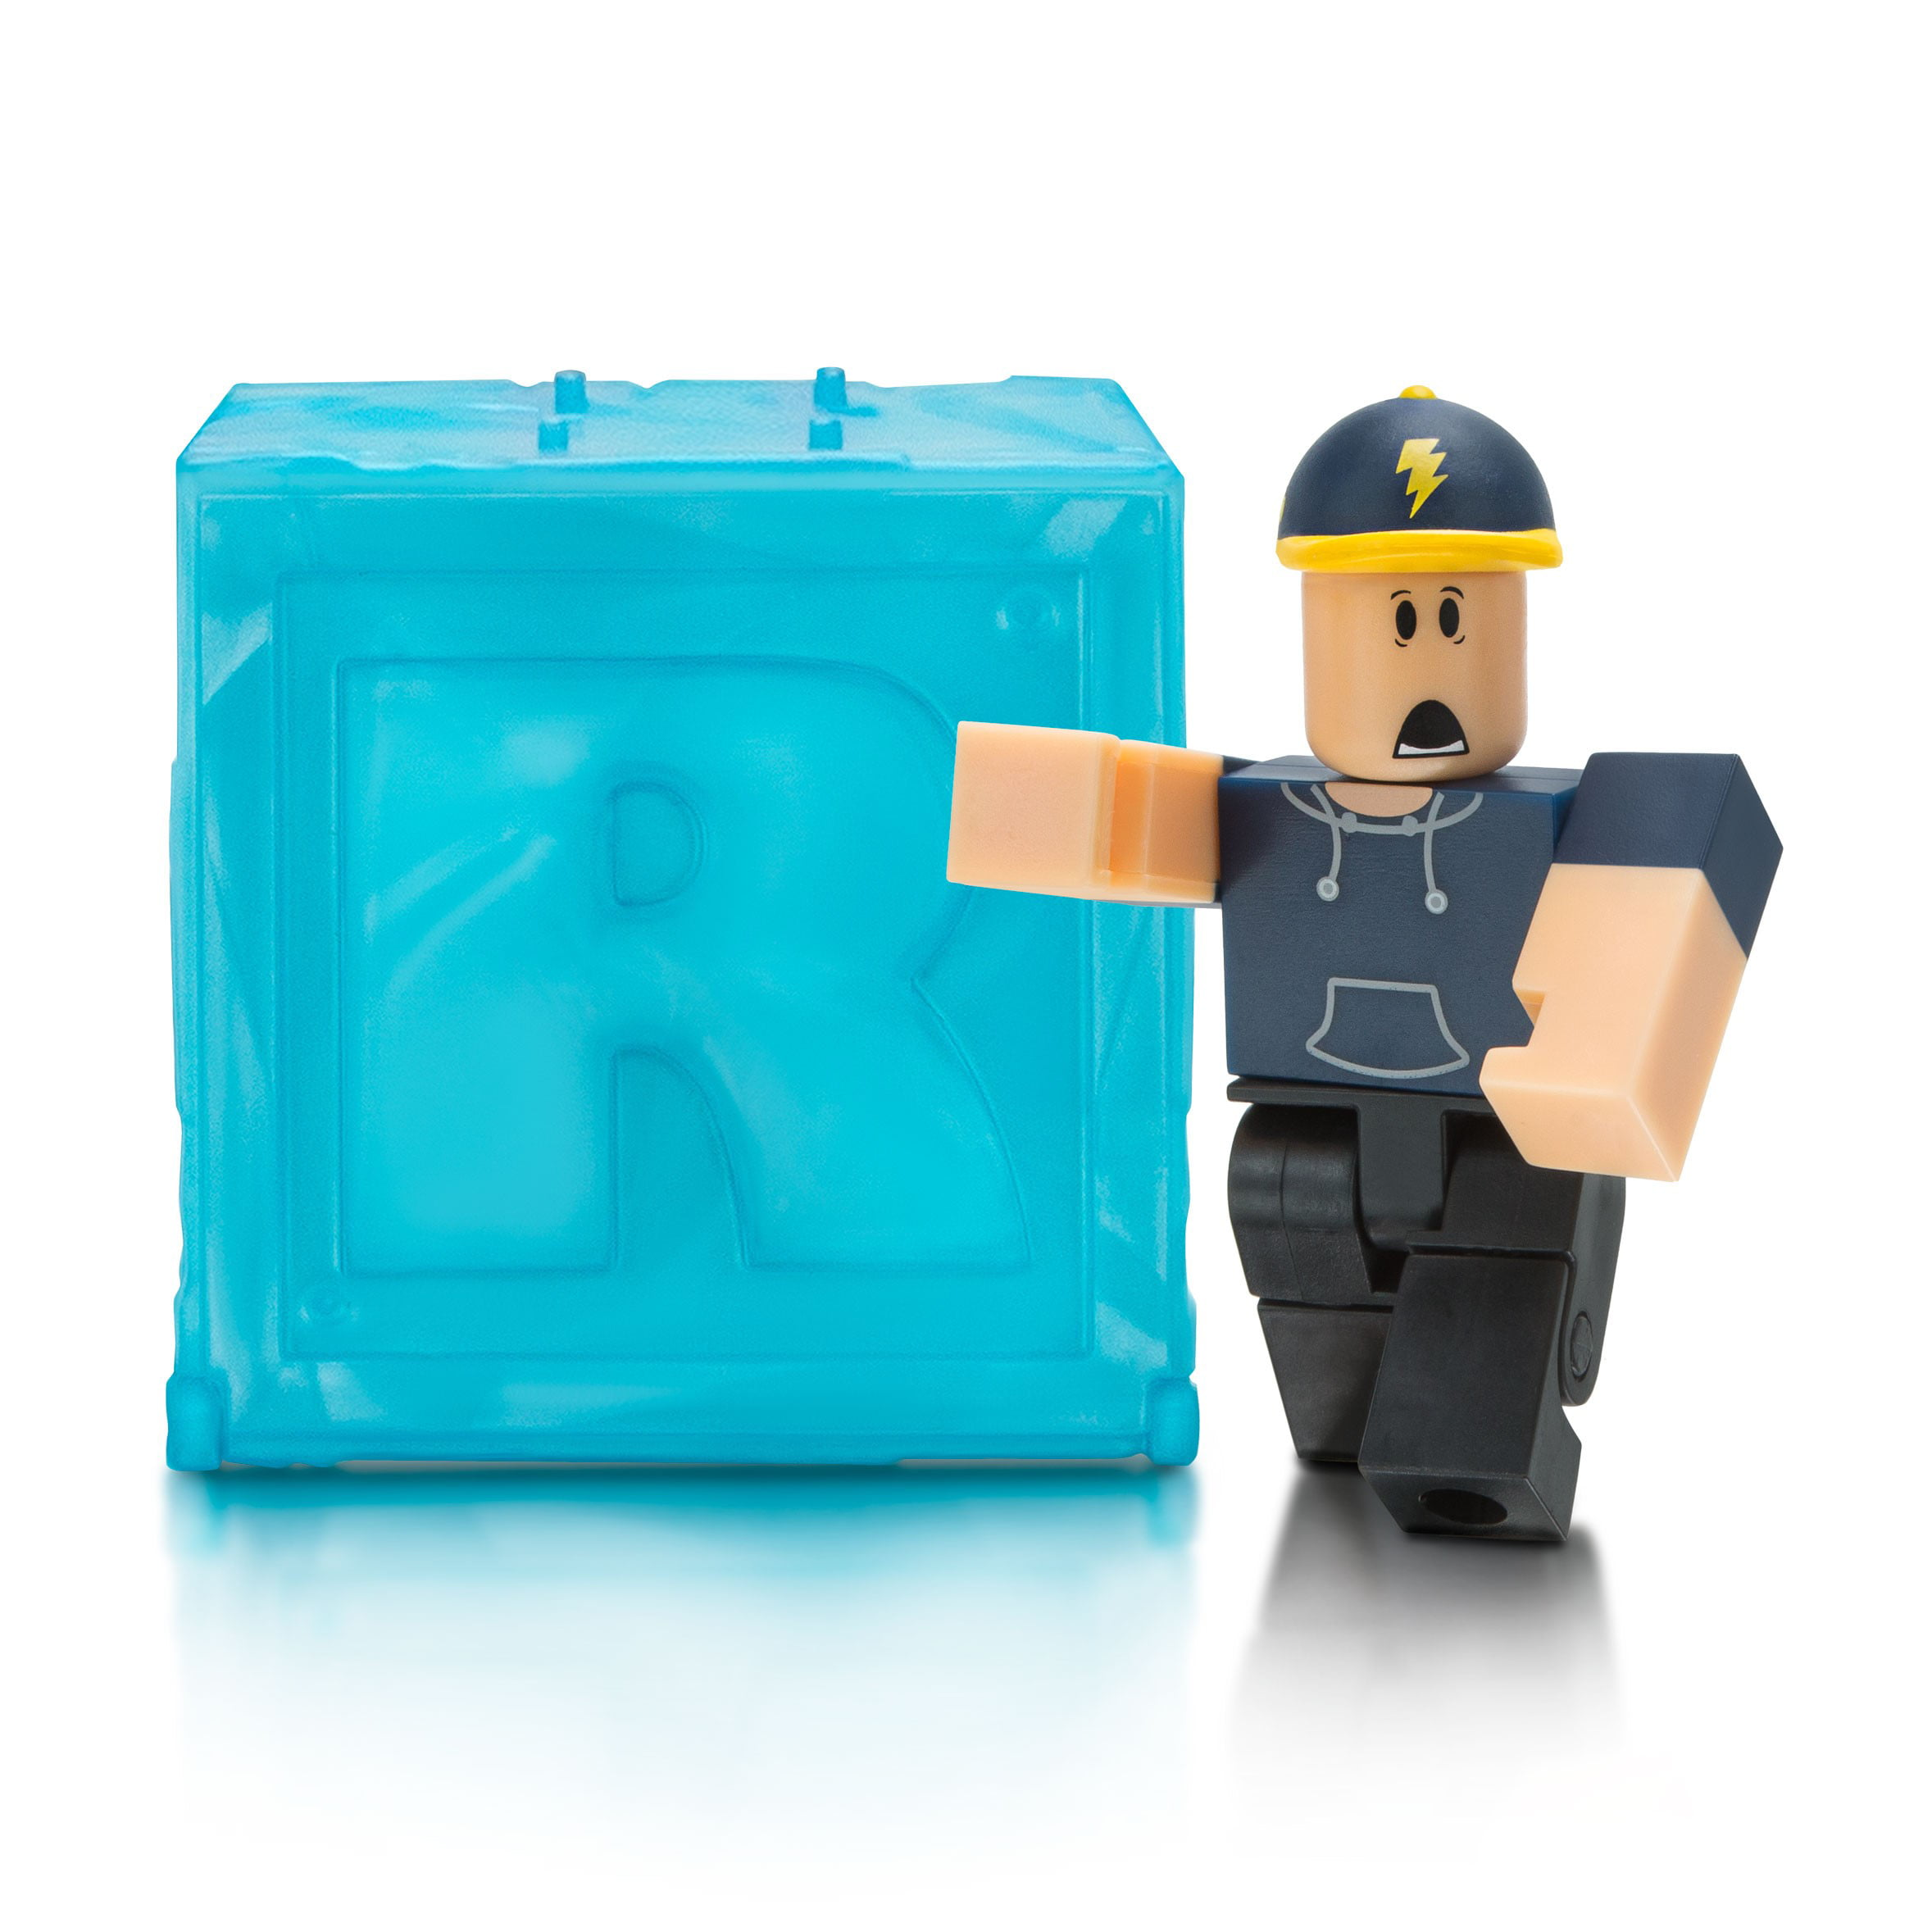 Roblox Action Collection Series 3 Mystery Figure Includes 1